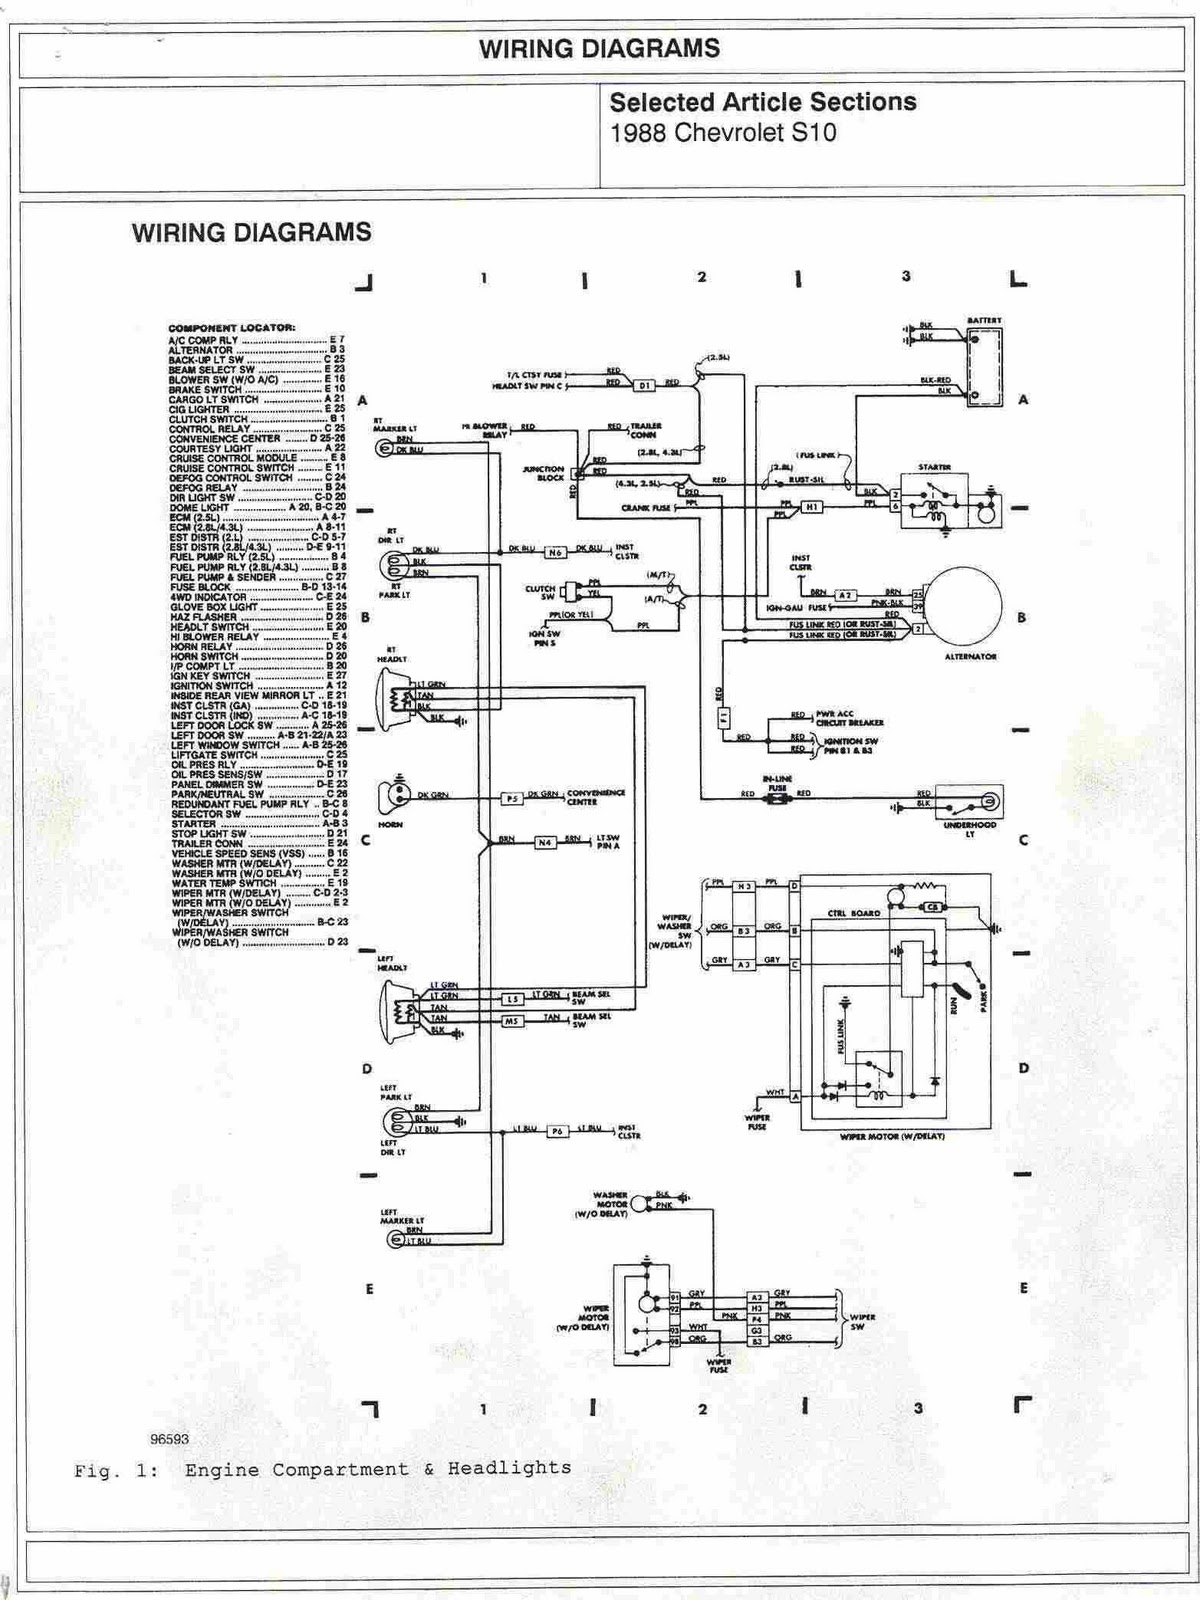 1990 Chevy Truck Headlight Wiring Diagram Library 1996 Blazer Fuse Box S10 Diagramrhsvlcus